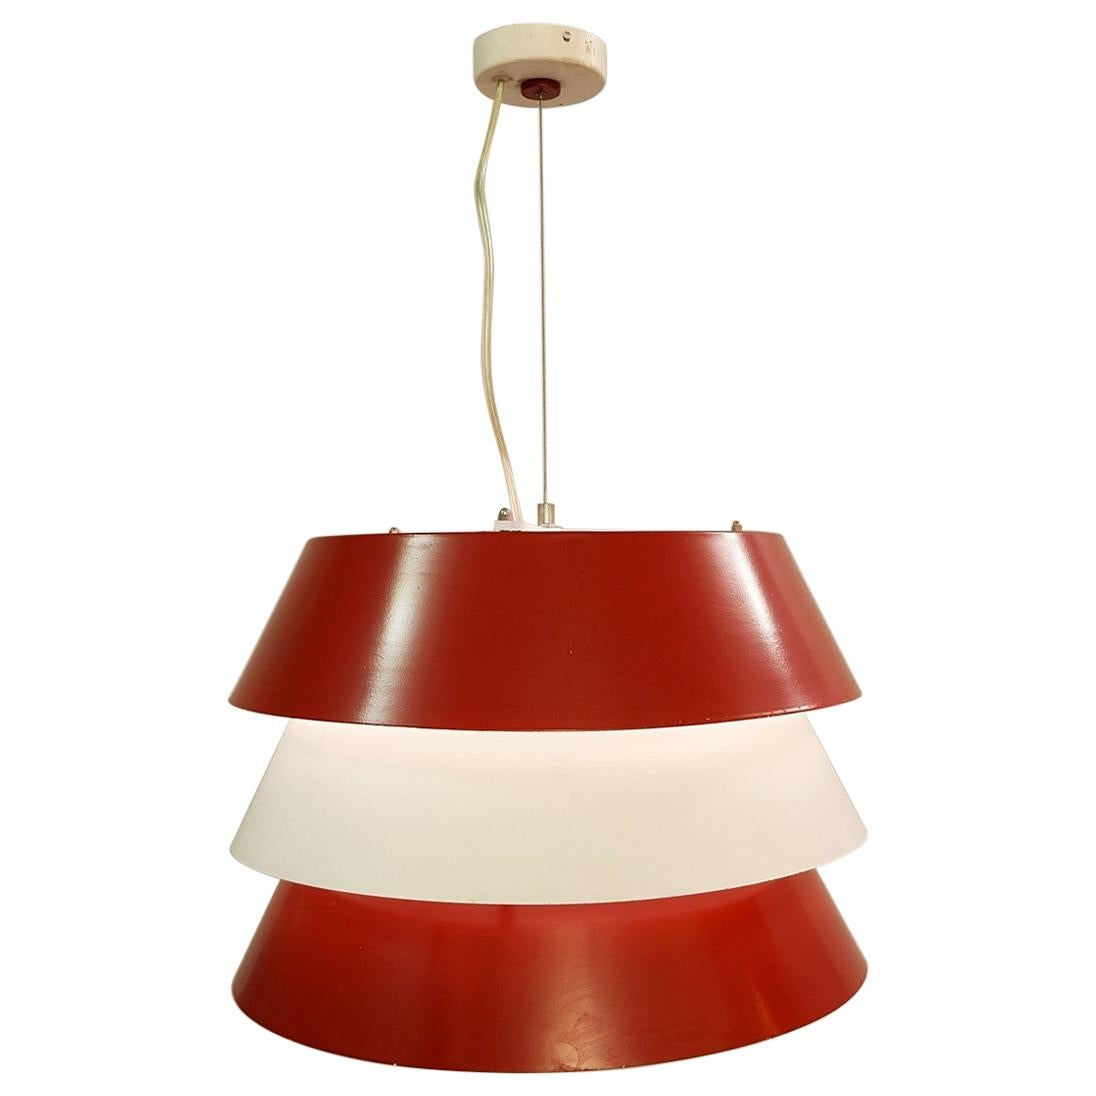 Italian Red and White Metal Pendant Lamp, 1960s